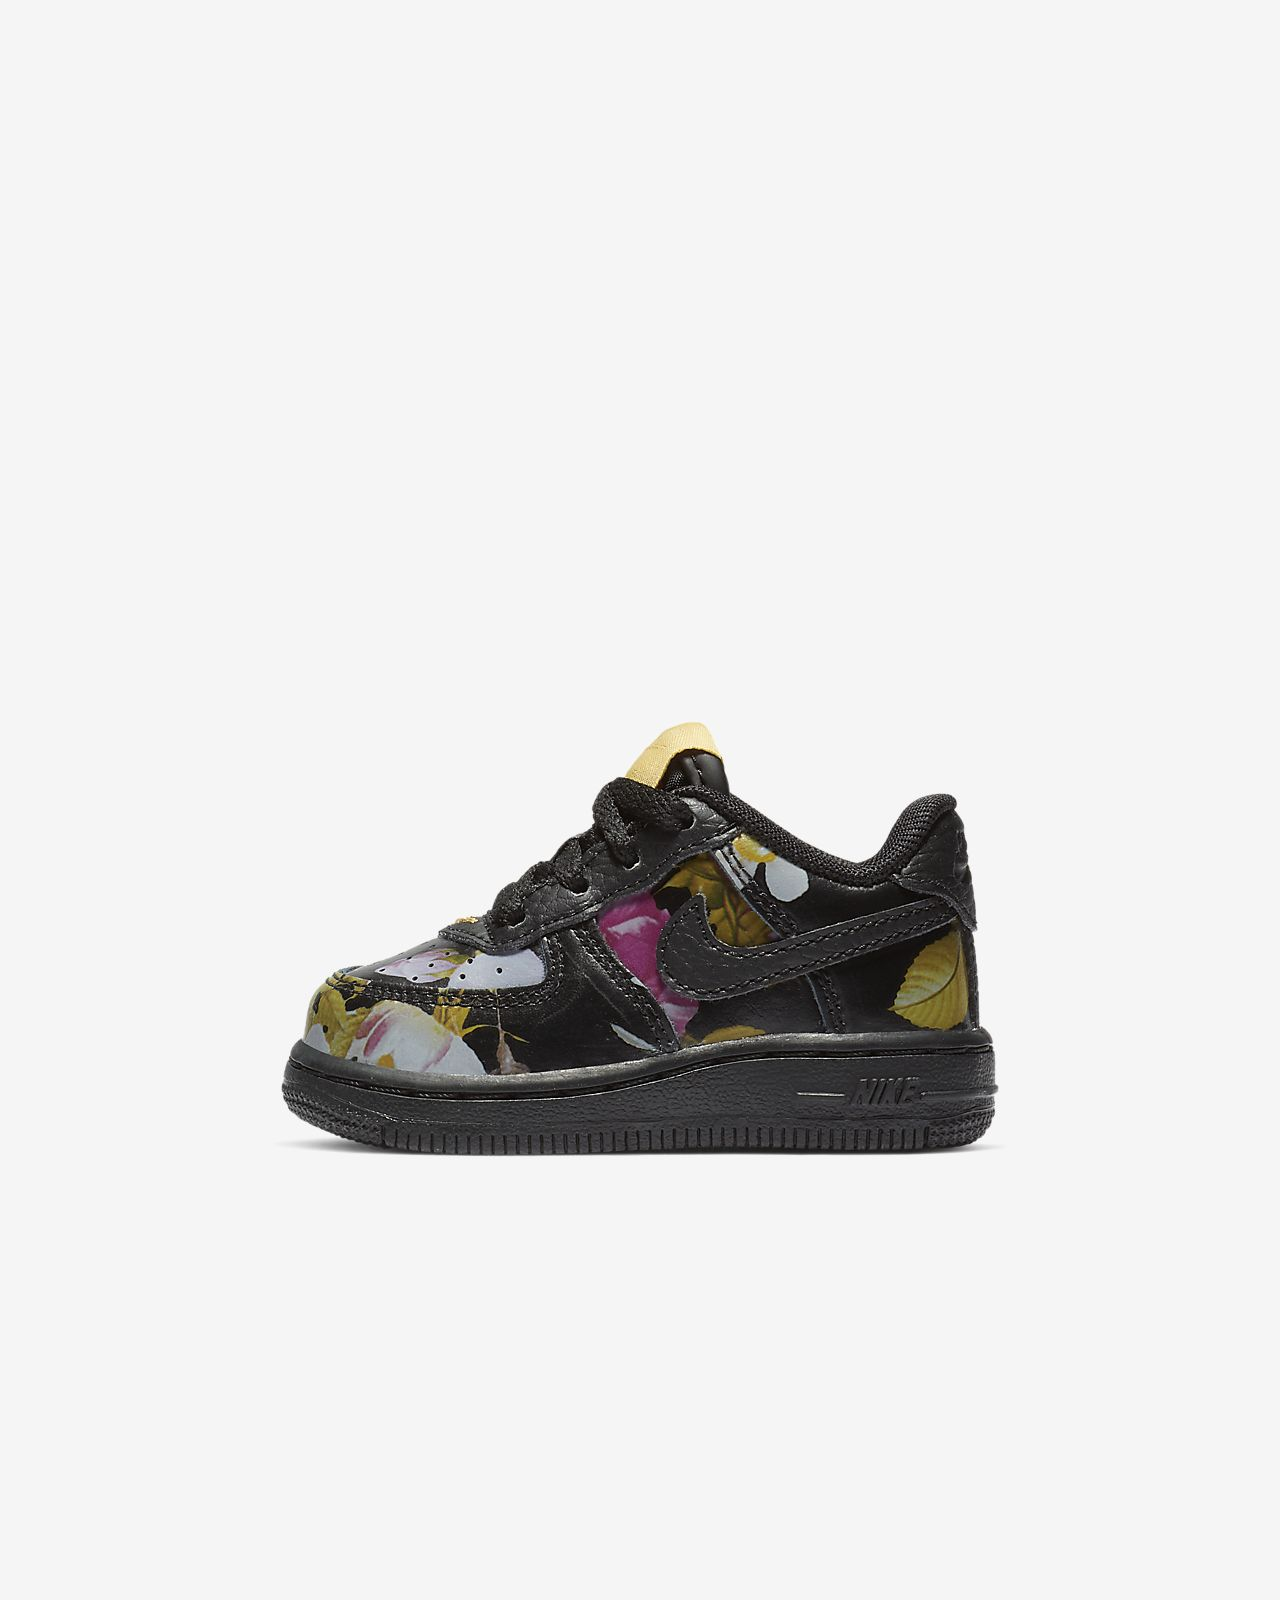 Nike Force 1 LXX Baby/Toddler Floral Shoe